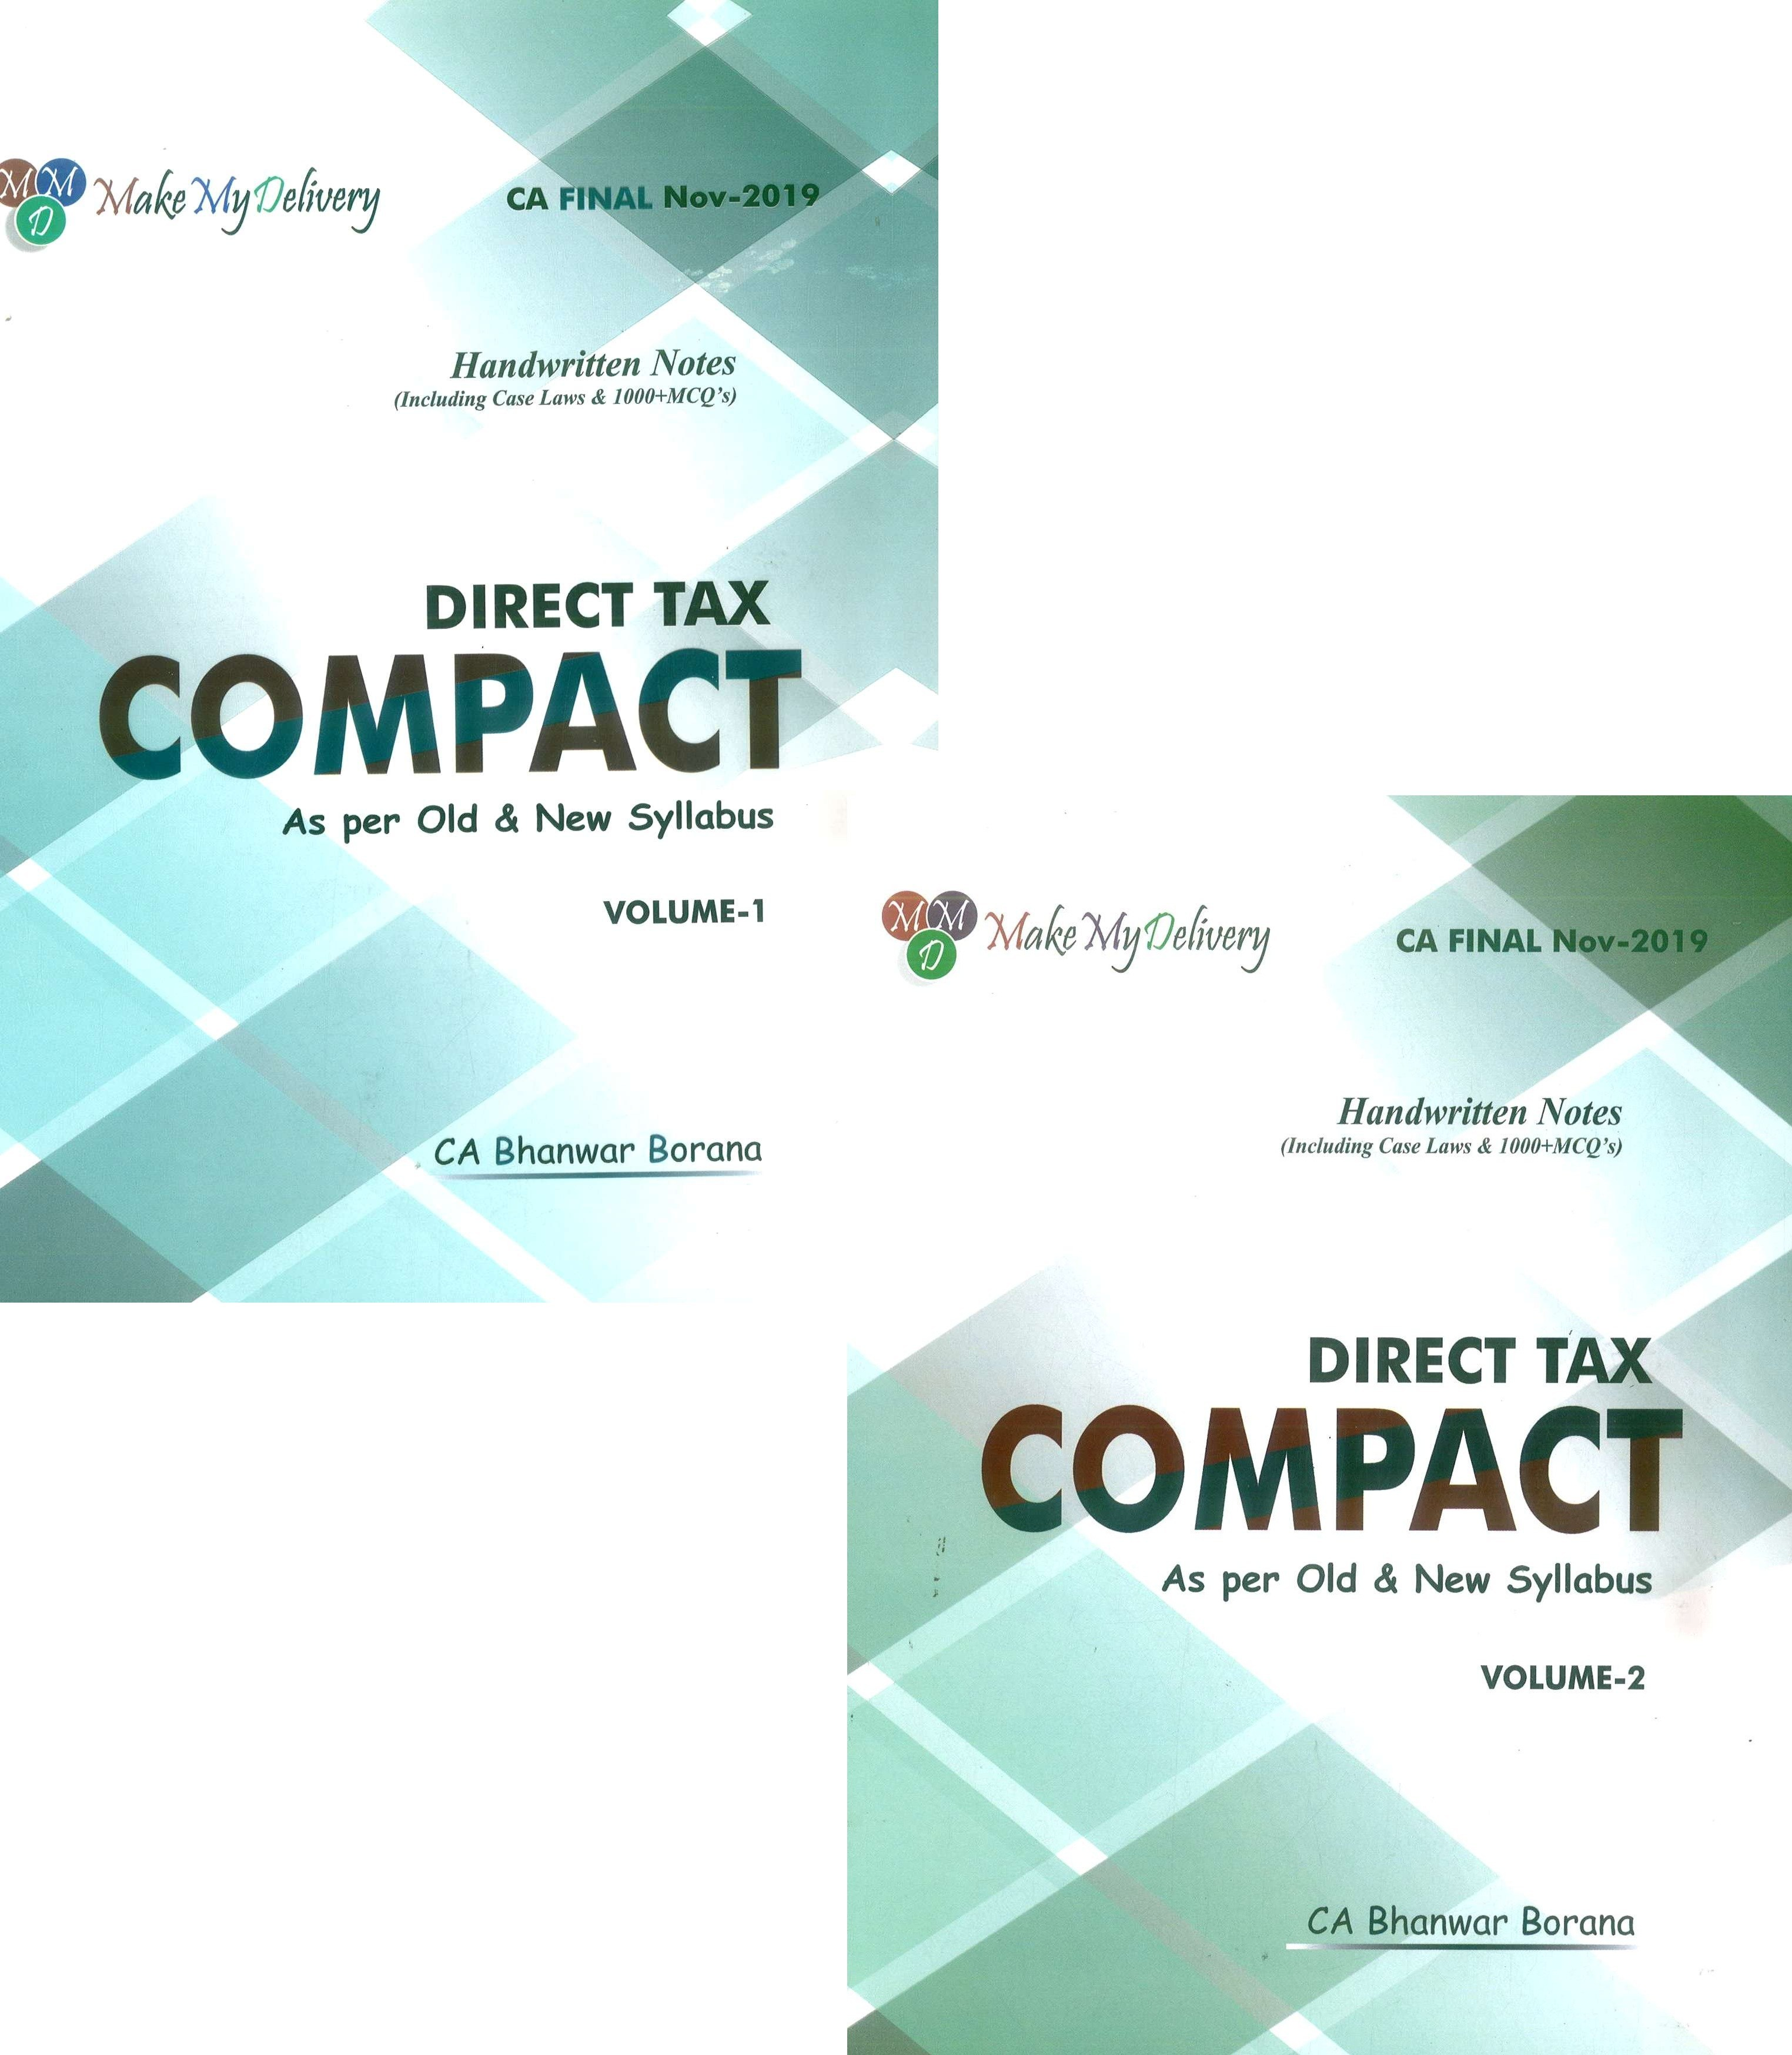 MakeMyDelivery COMPACT A Handwritten Book for CA Final Direct Tax Including case laws and 1000 MCQ (Set of 2 Volume) Old and New Syllabus both By CA Bhanwar Borana Applicable For Nov 2019 Exam